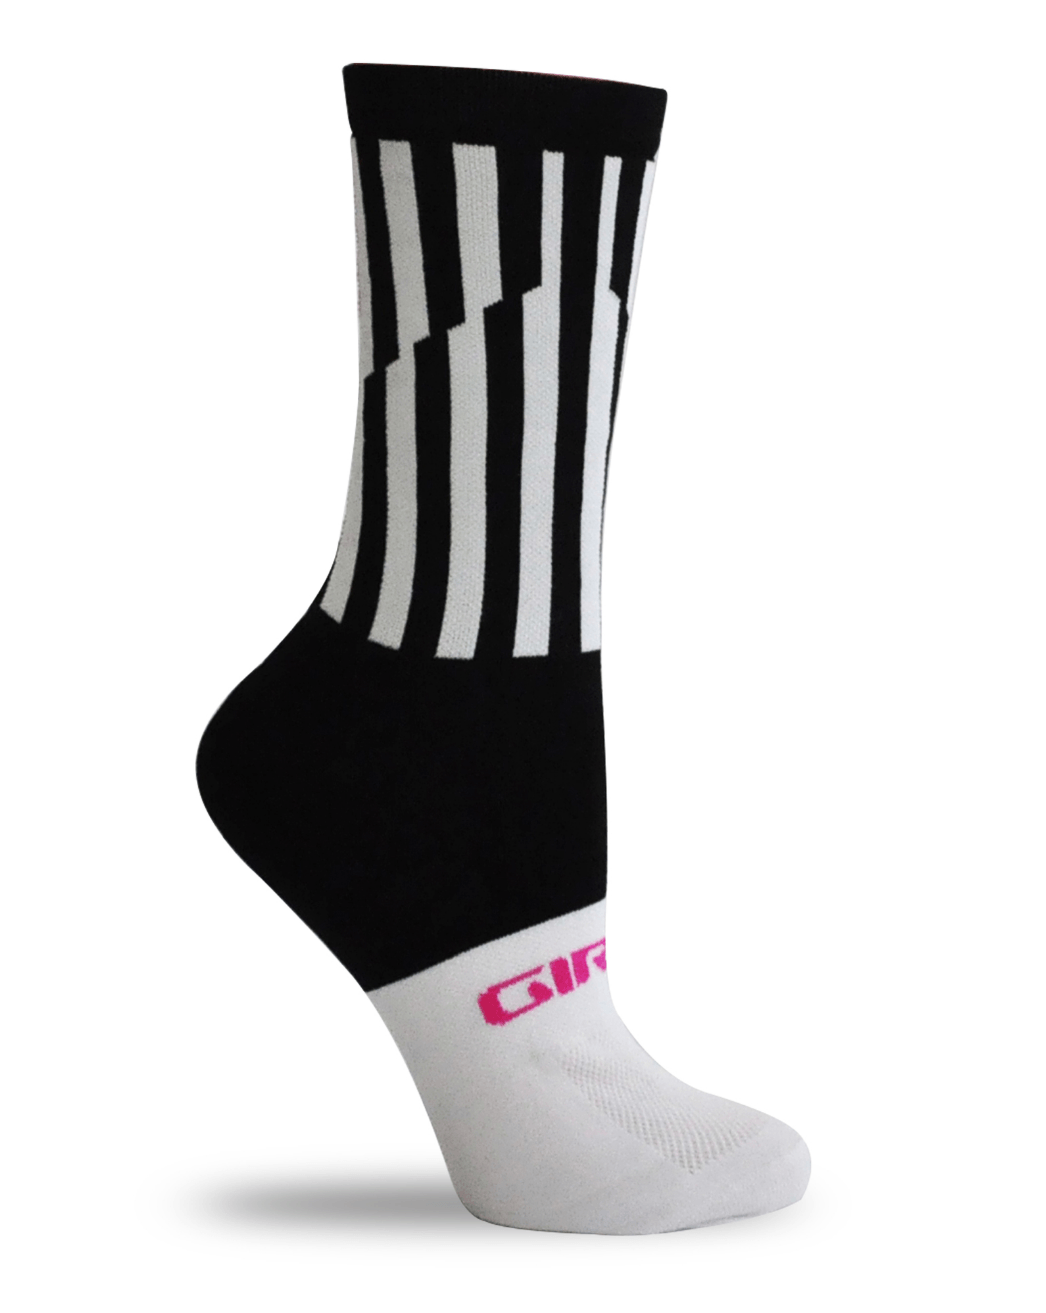 "GIRO COMP HIGH RISE - 6"" Cuff Sock - White / Black LINES - Cycles Galleria Melbourne"